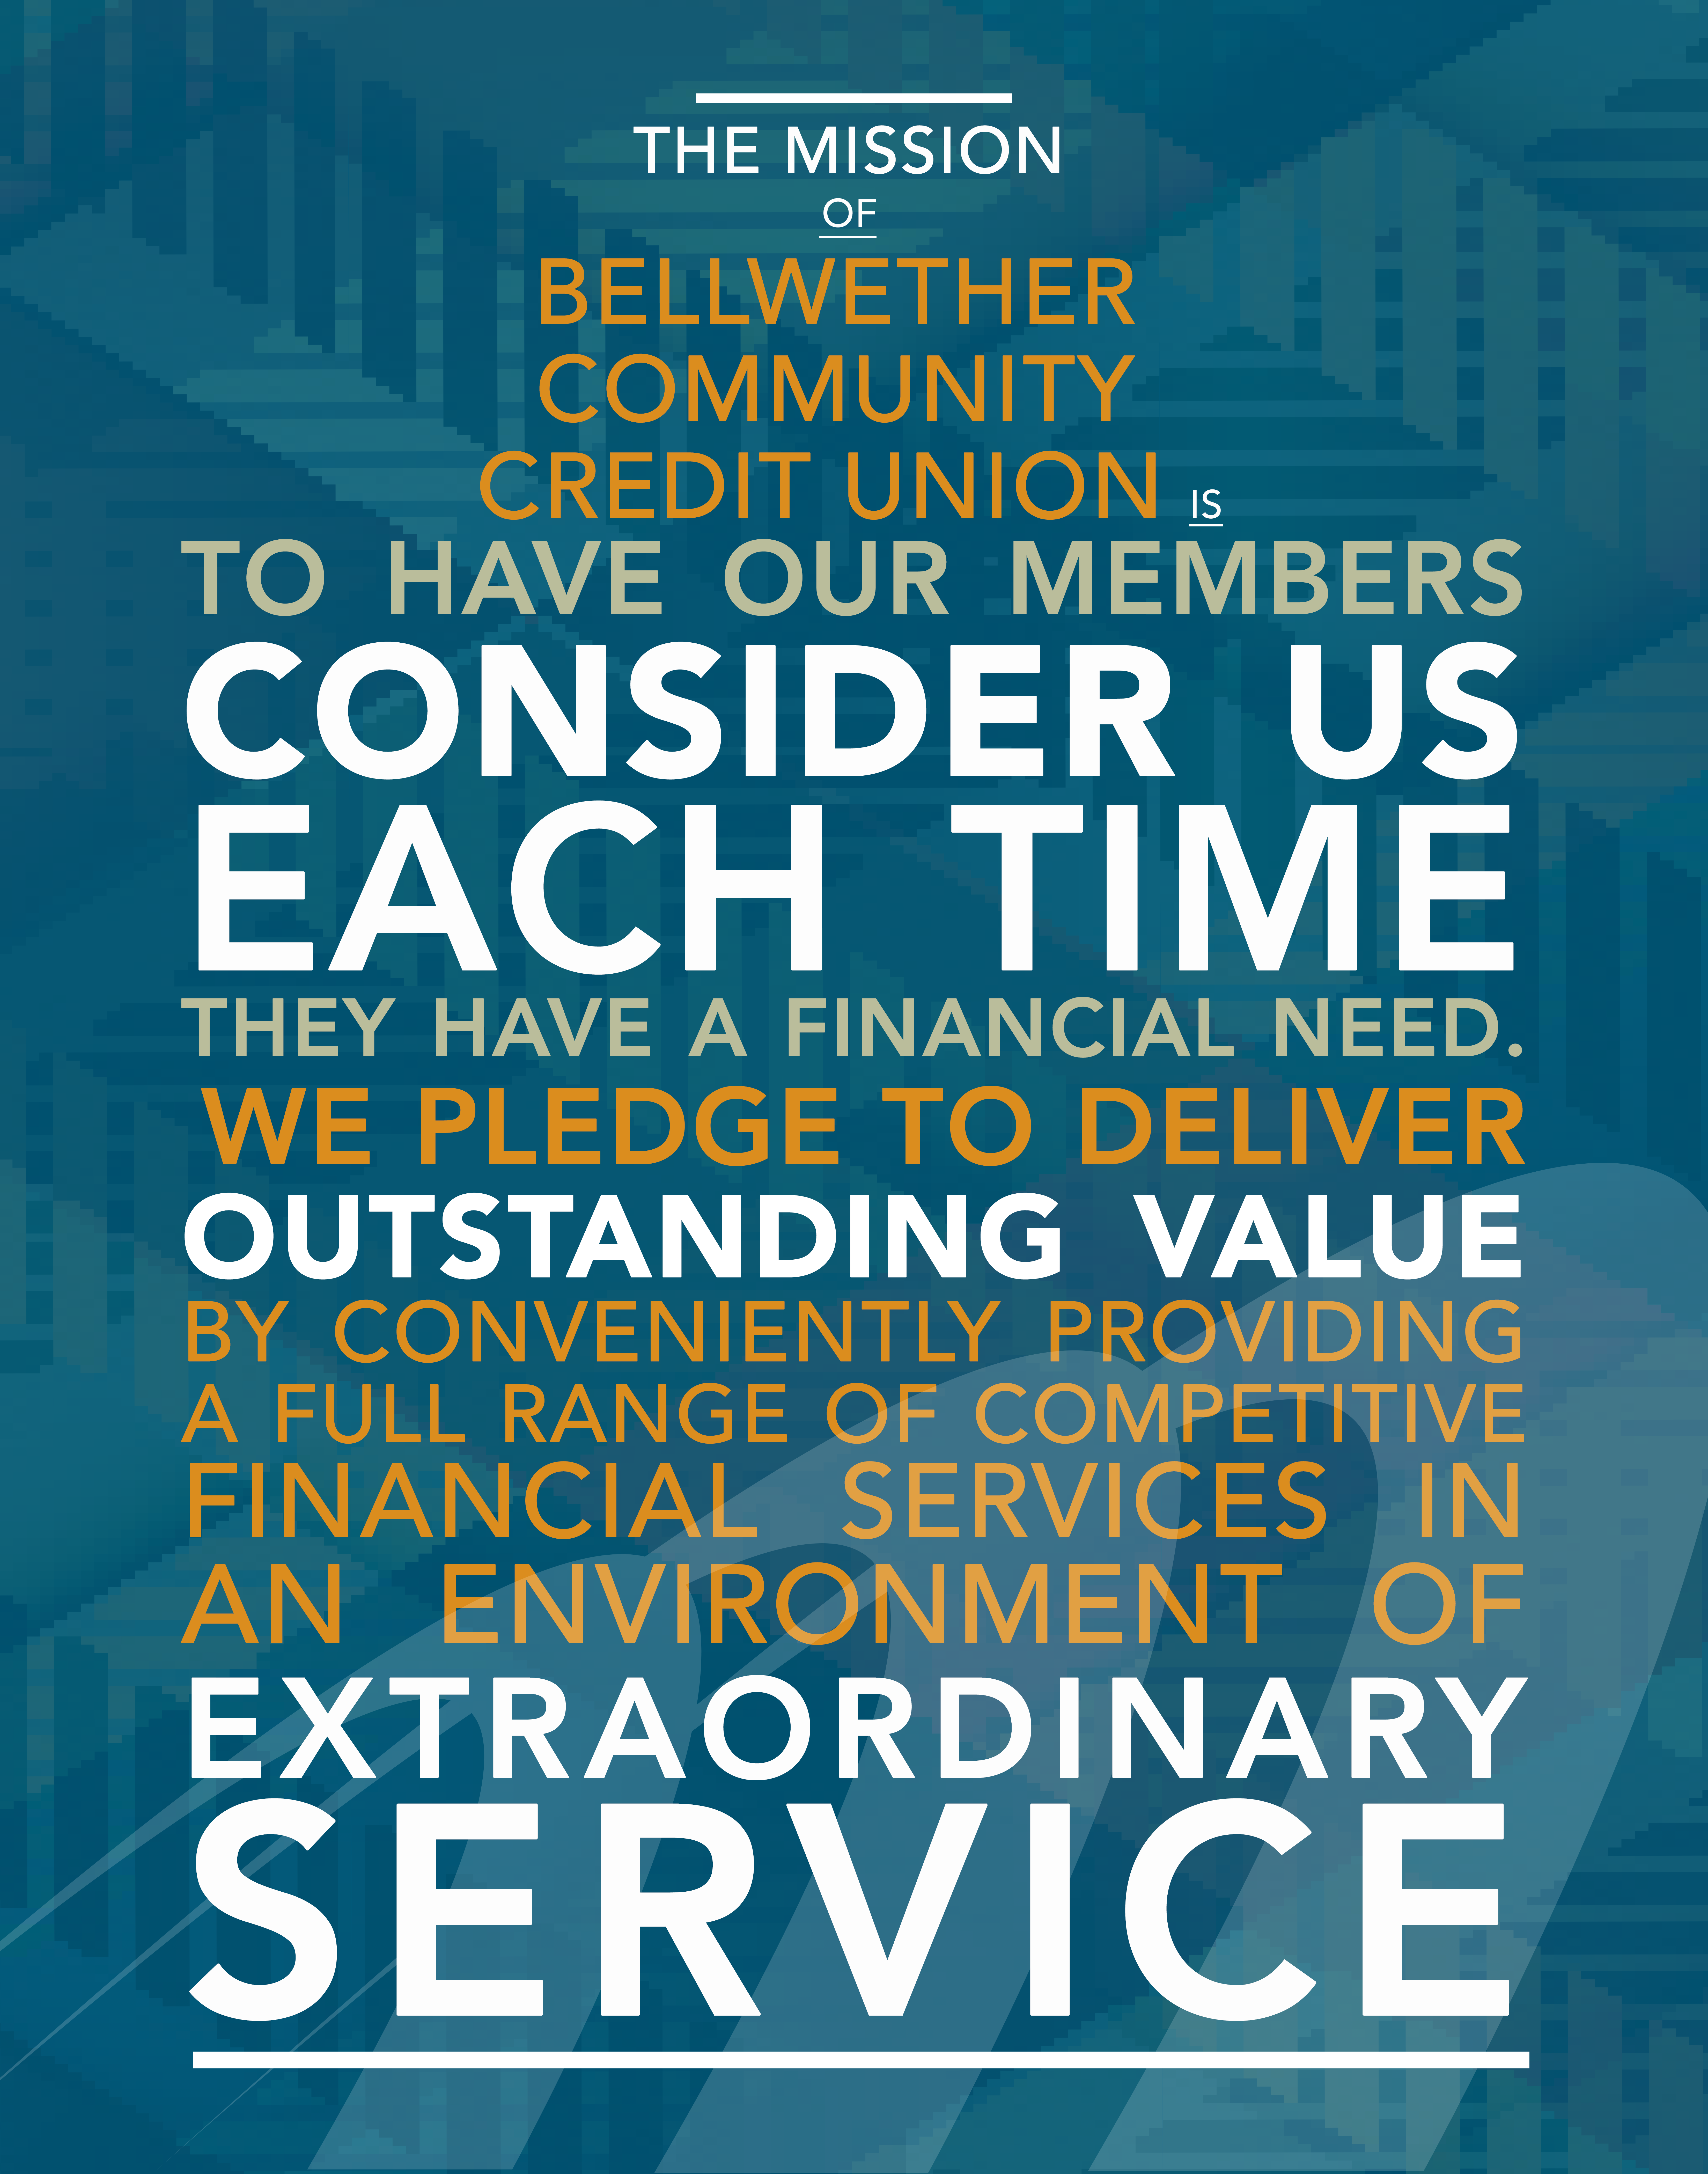 Bellwether's Mission